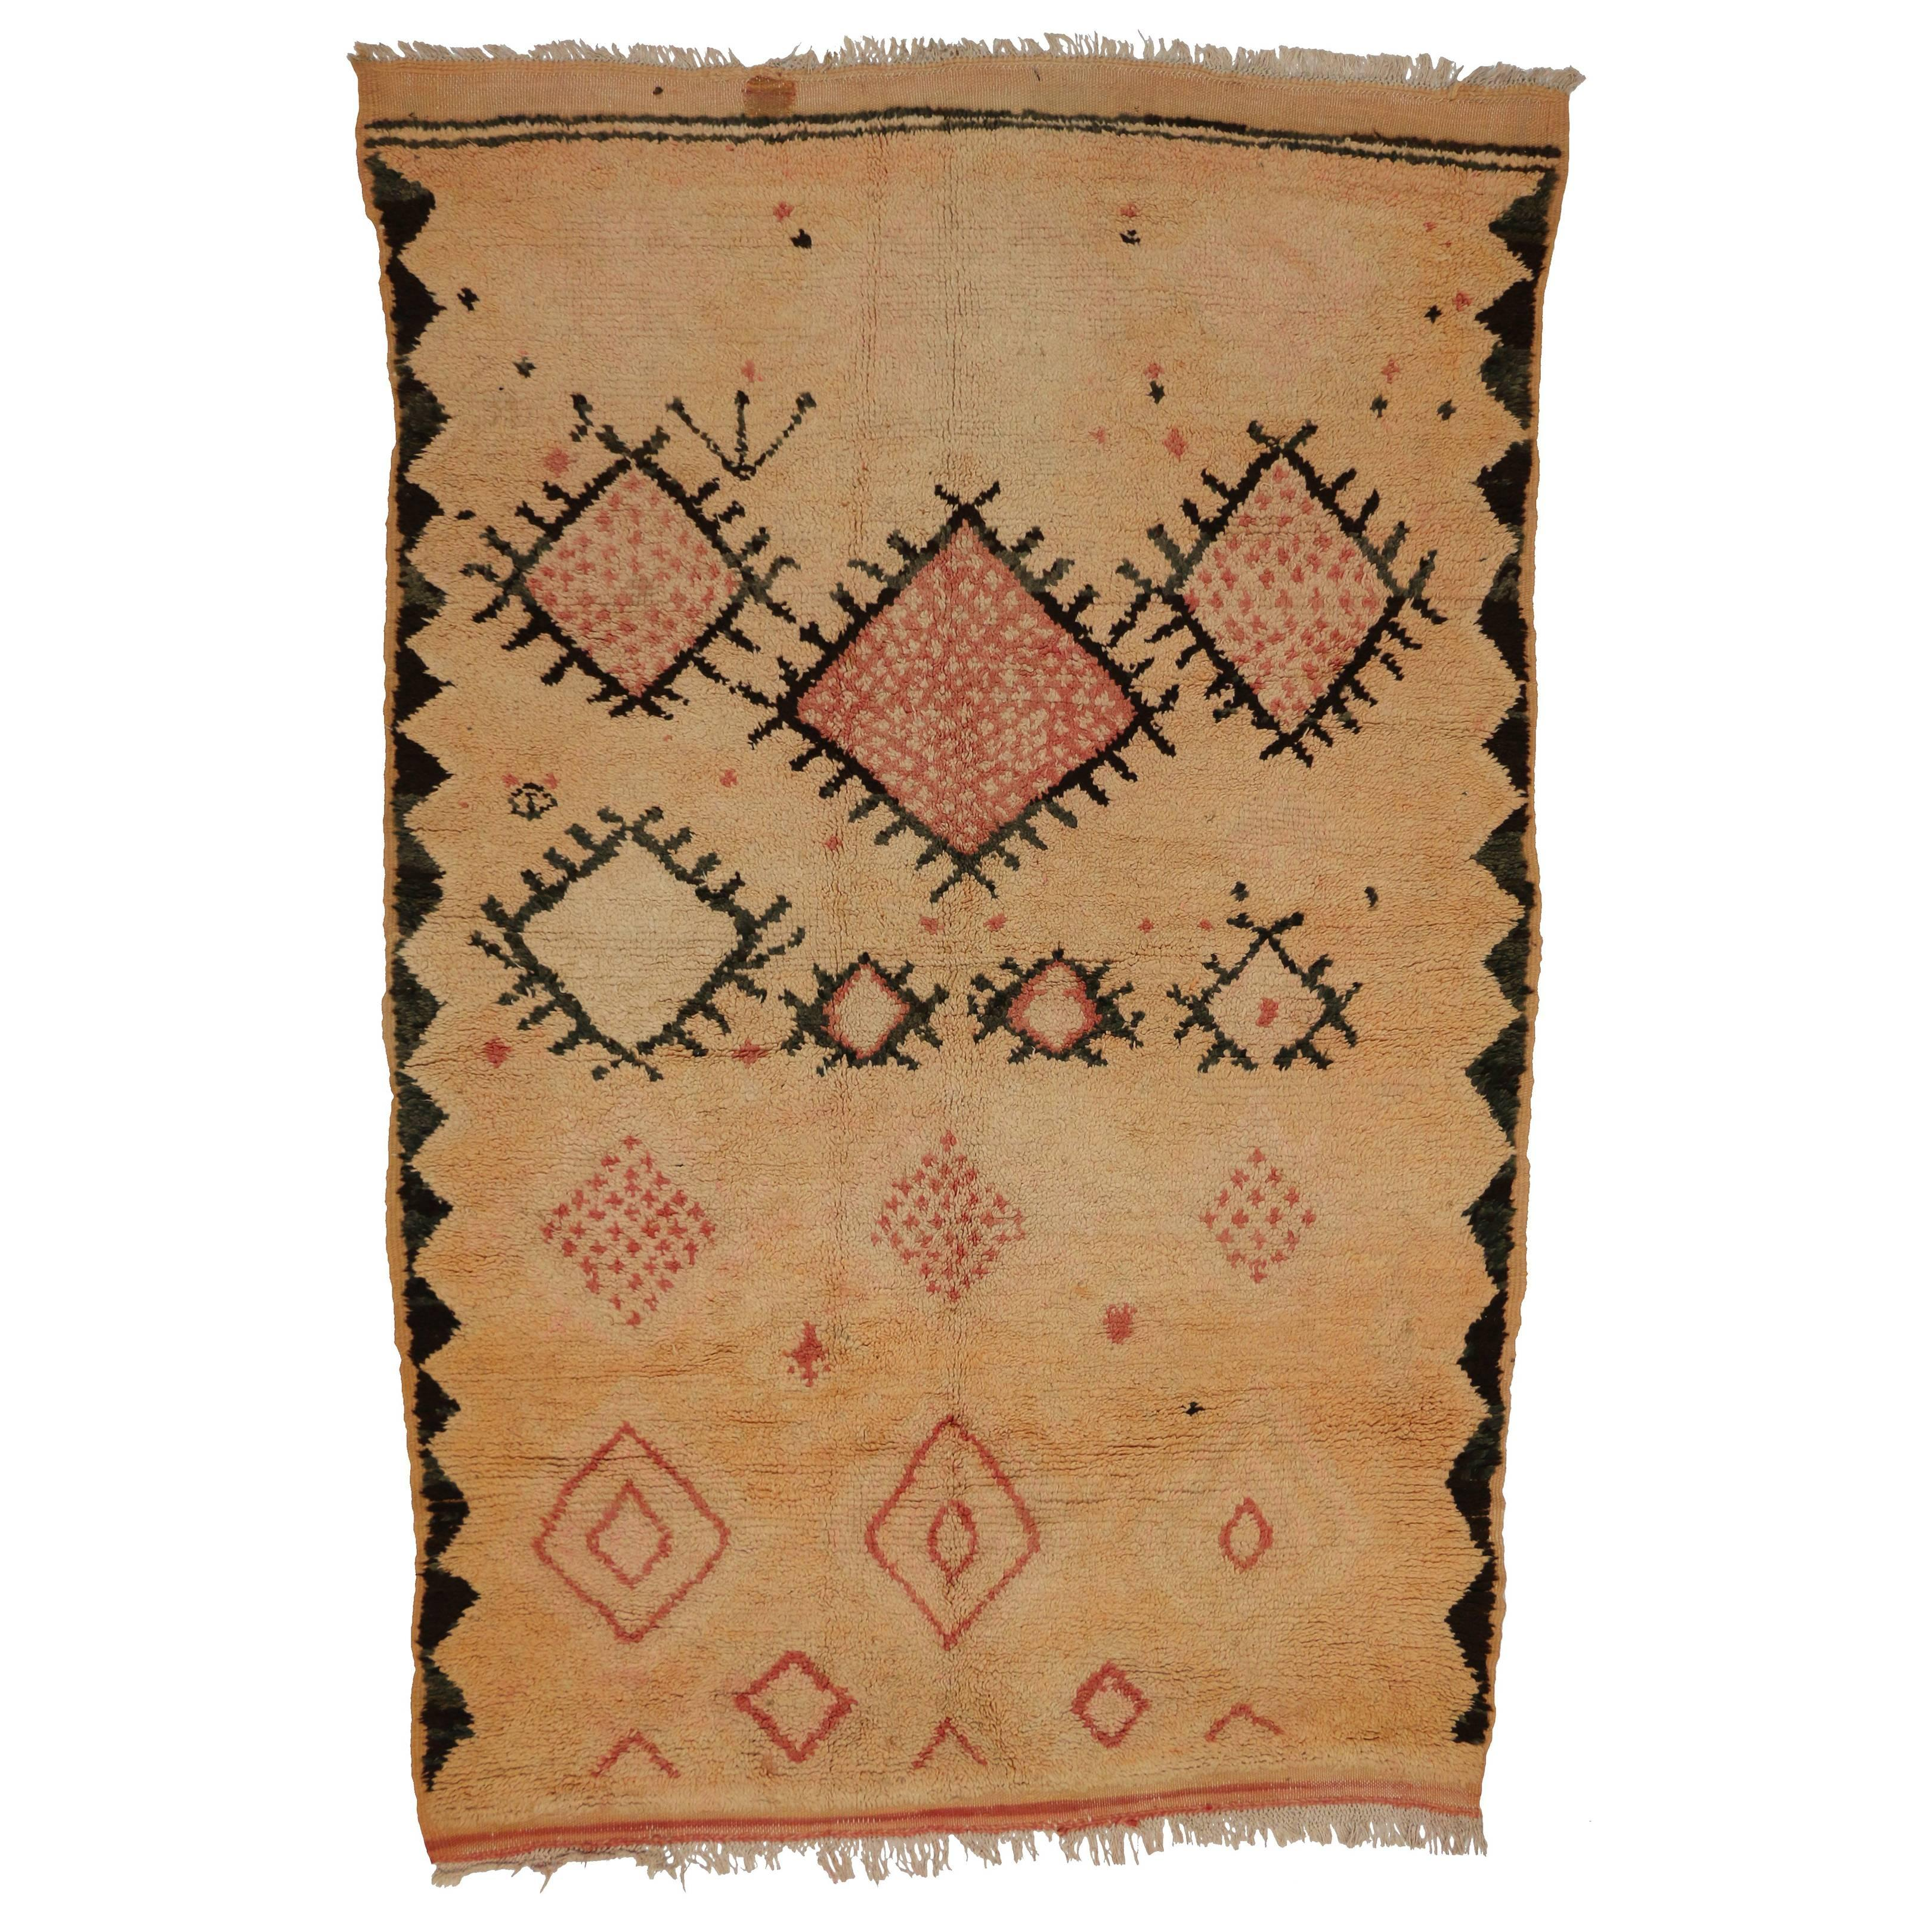 Vintage Berber Moroccan Boujad Rug with Tribal Style and Soft Pastel Colors